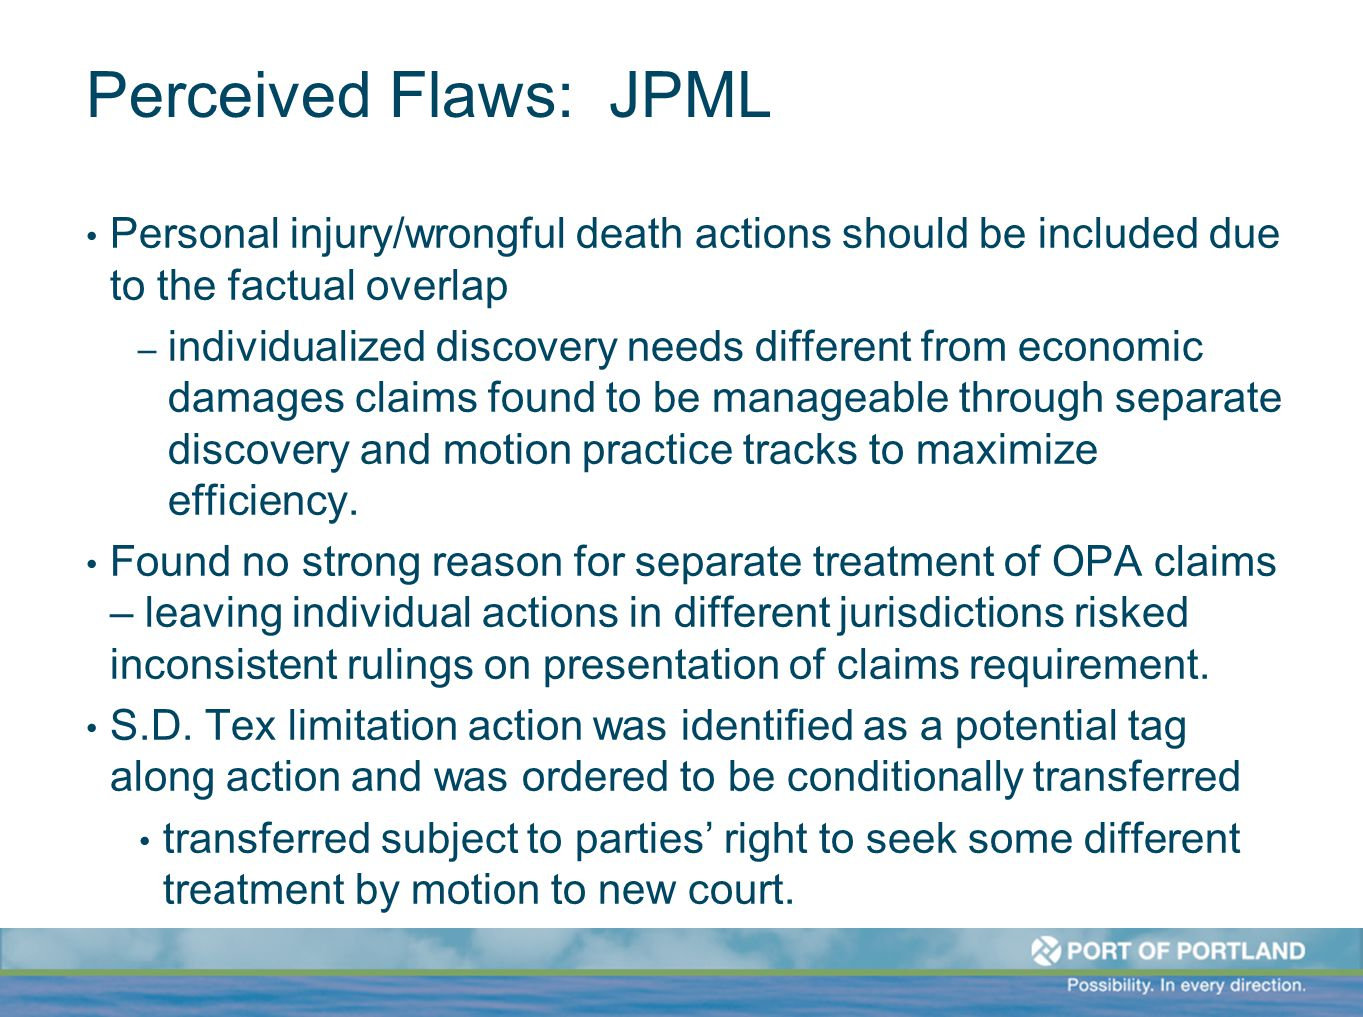 Perceived Flaws: JPML Personal injury/wrongful death actions should be included due to the factual overlap – individualized discovery needs different from economic damages claims found to be manageable through separate discovery and motion practice tracks to maximize efficiency.